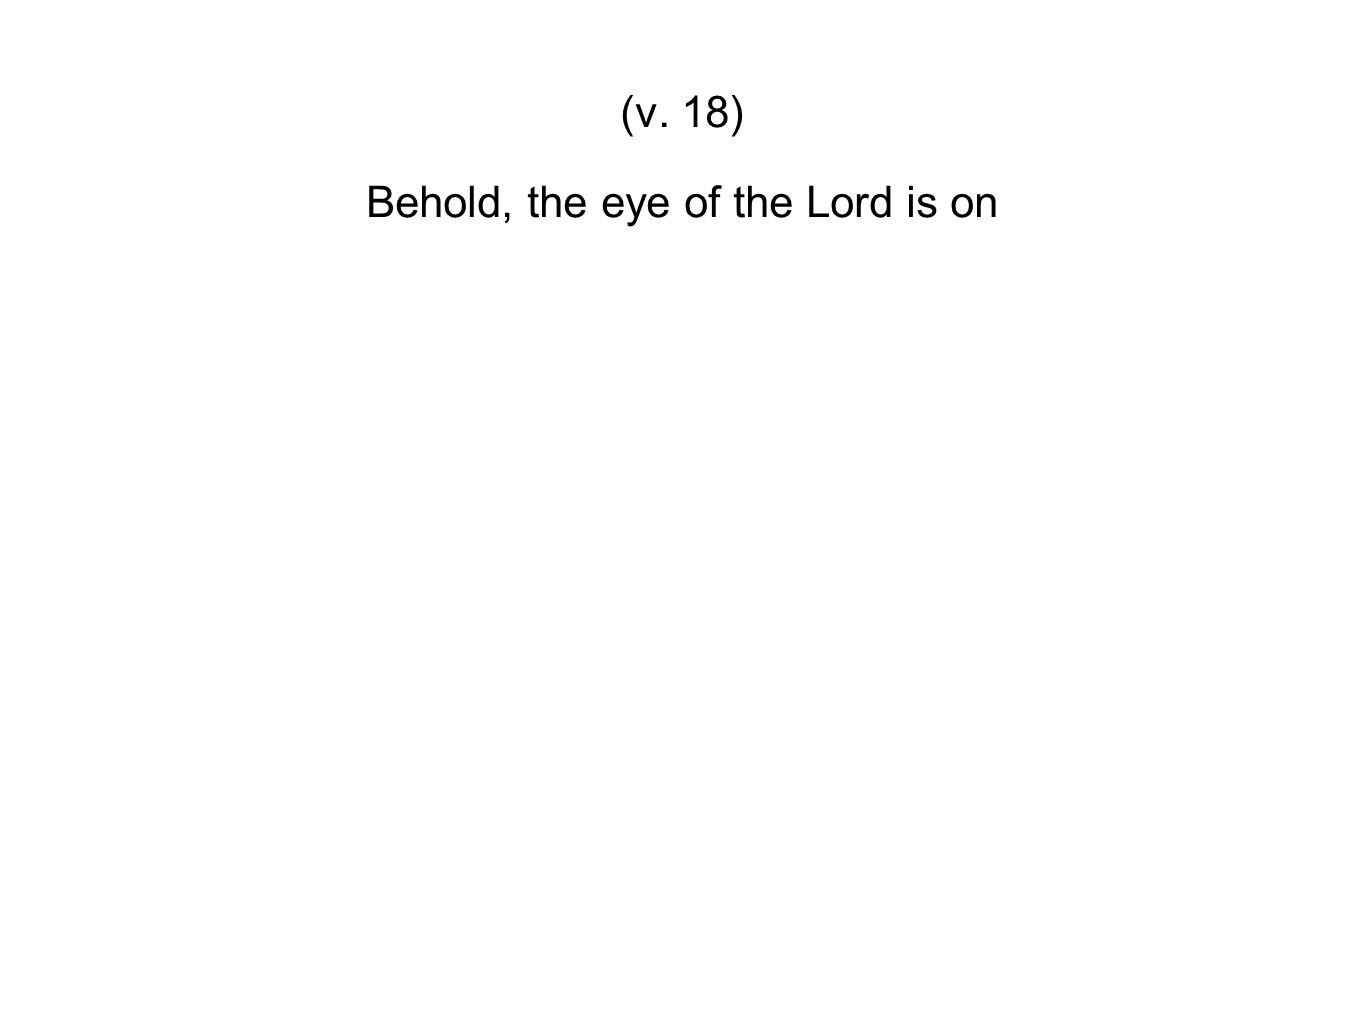 Behold, the eye of the Lord is on